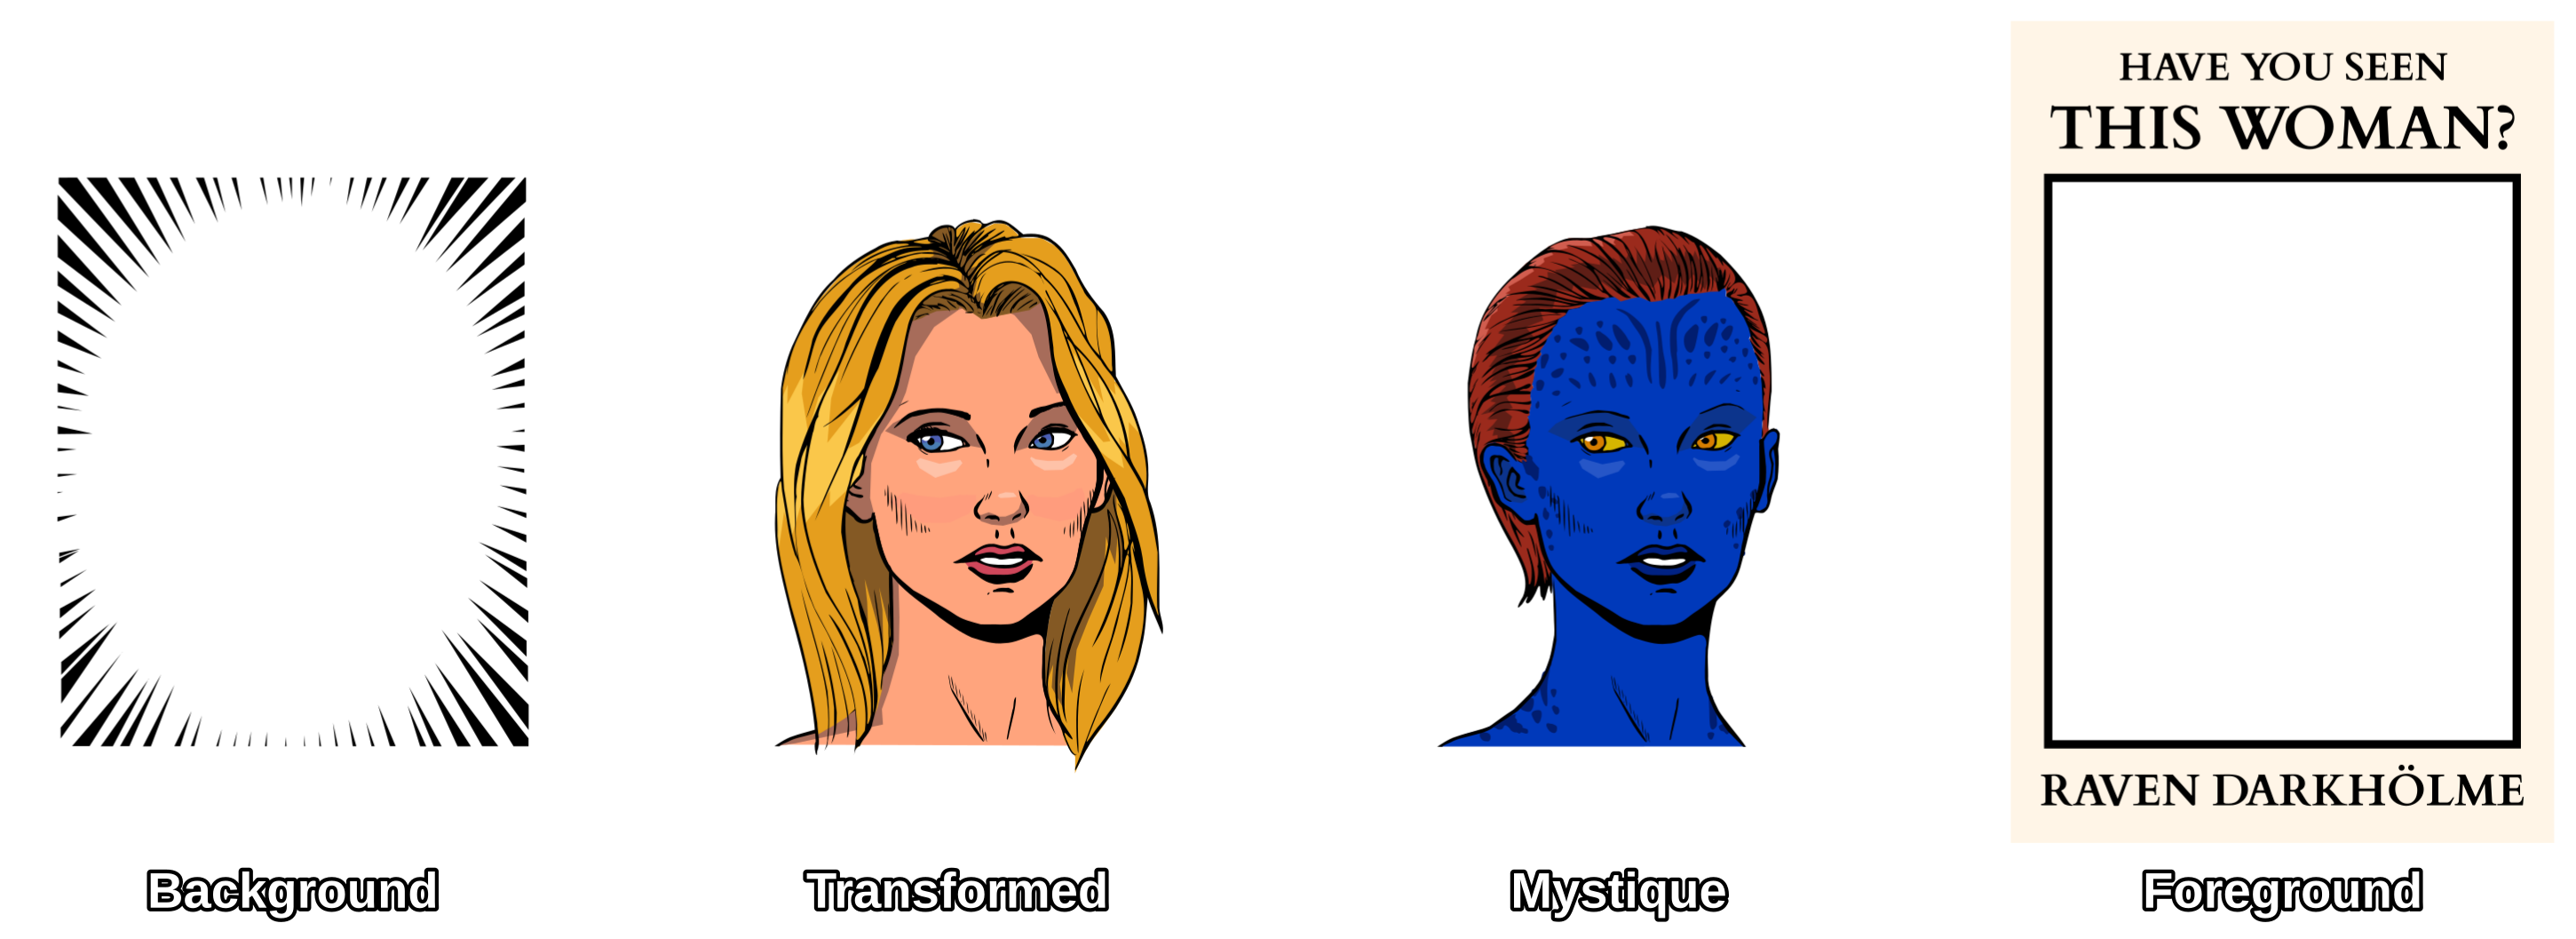 """All the different parts of the final composition. From left to right, first is the background with a textured effect. Second, a drawing of a disguised mystique as a blonde woman. Third, mystique in her natural blue form. Fourth is the foreground, a poster with the words """"Have you seen this woman?"""" at the top, a blank space in the middle and """"Raven Darkhölme"""" at the bottom."""